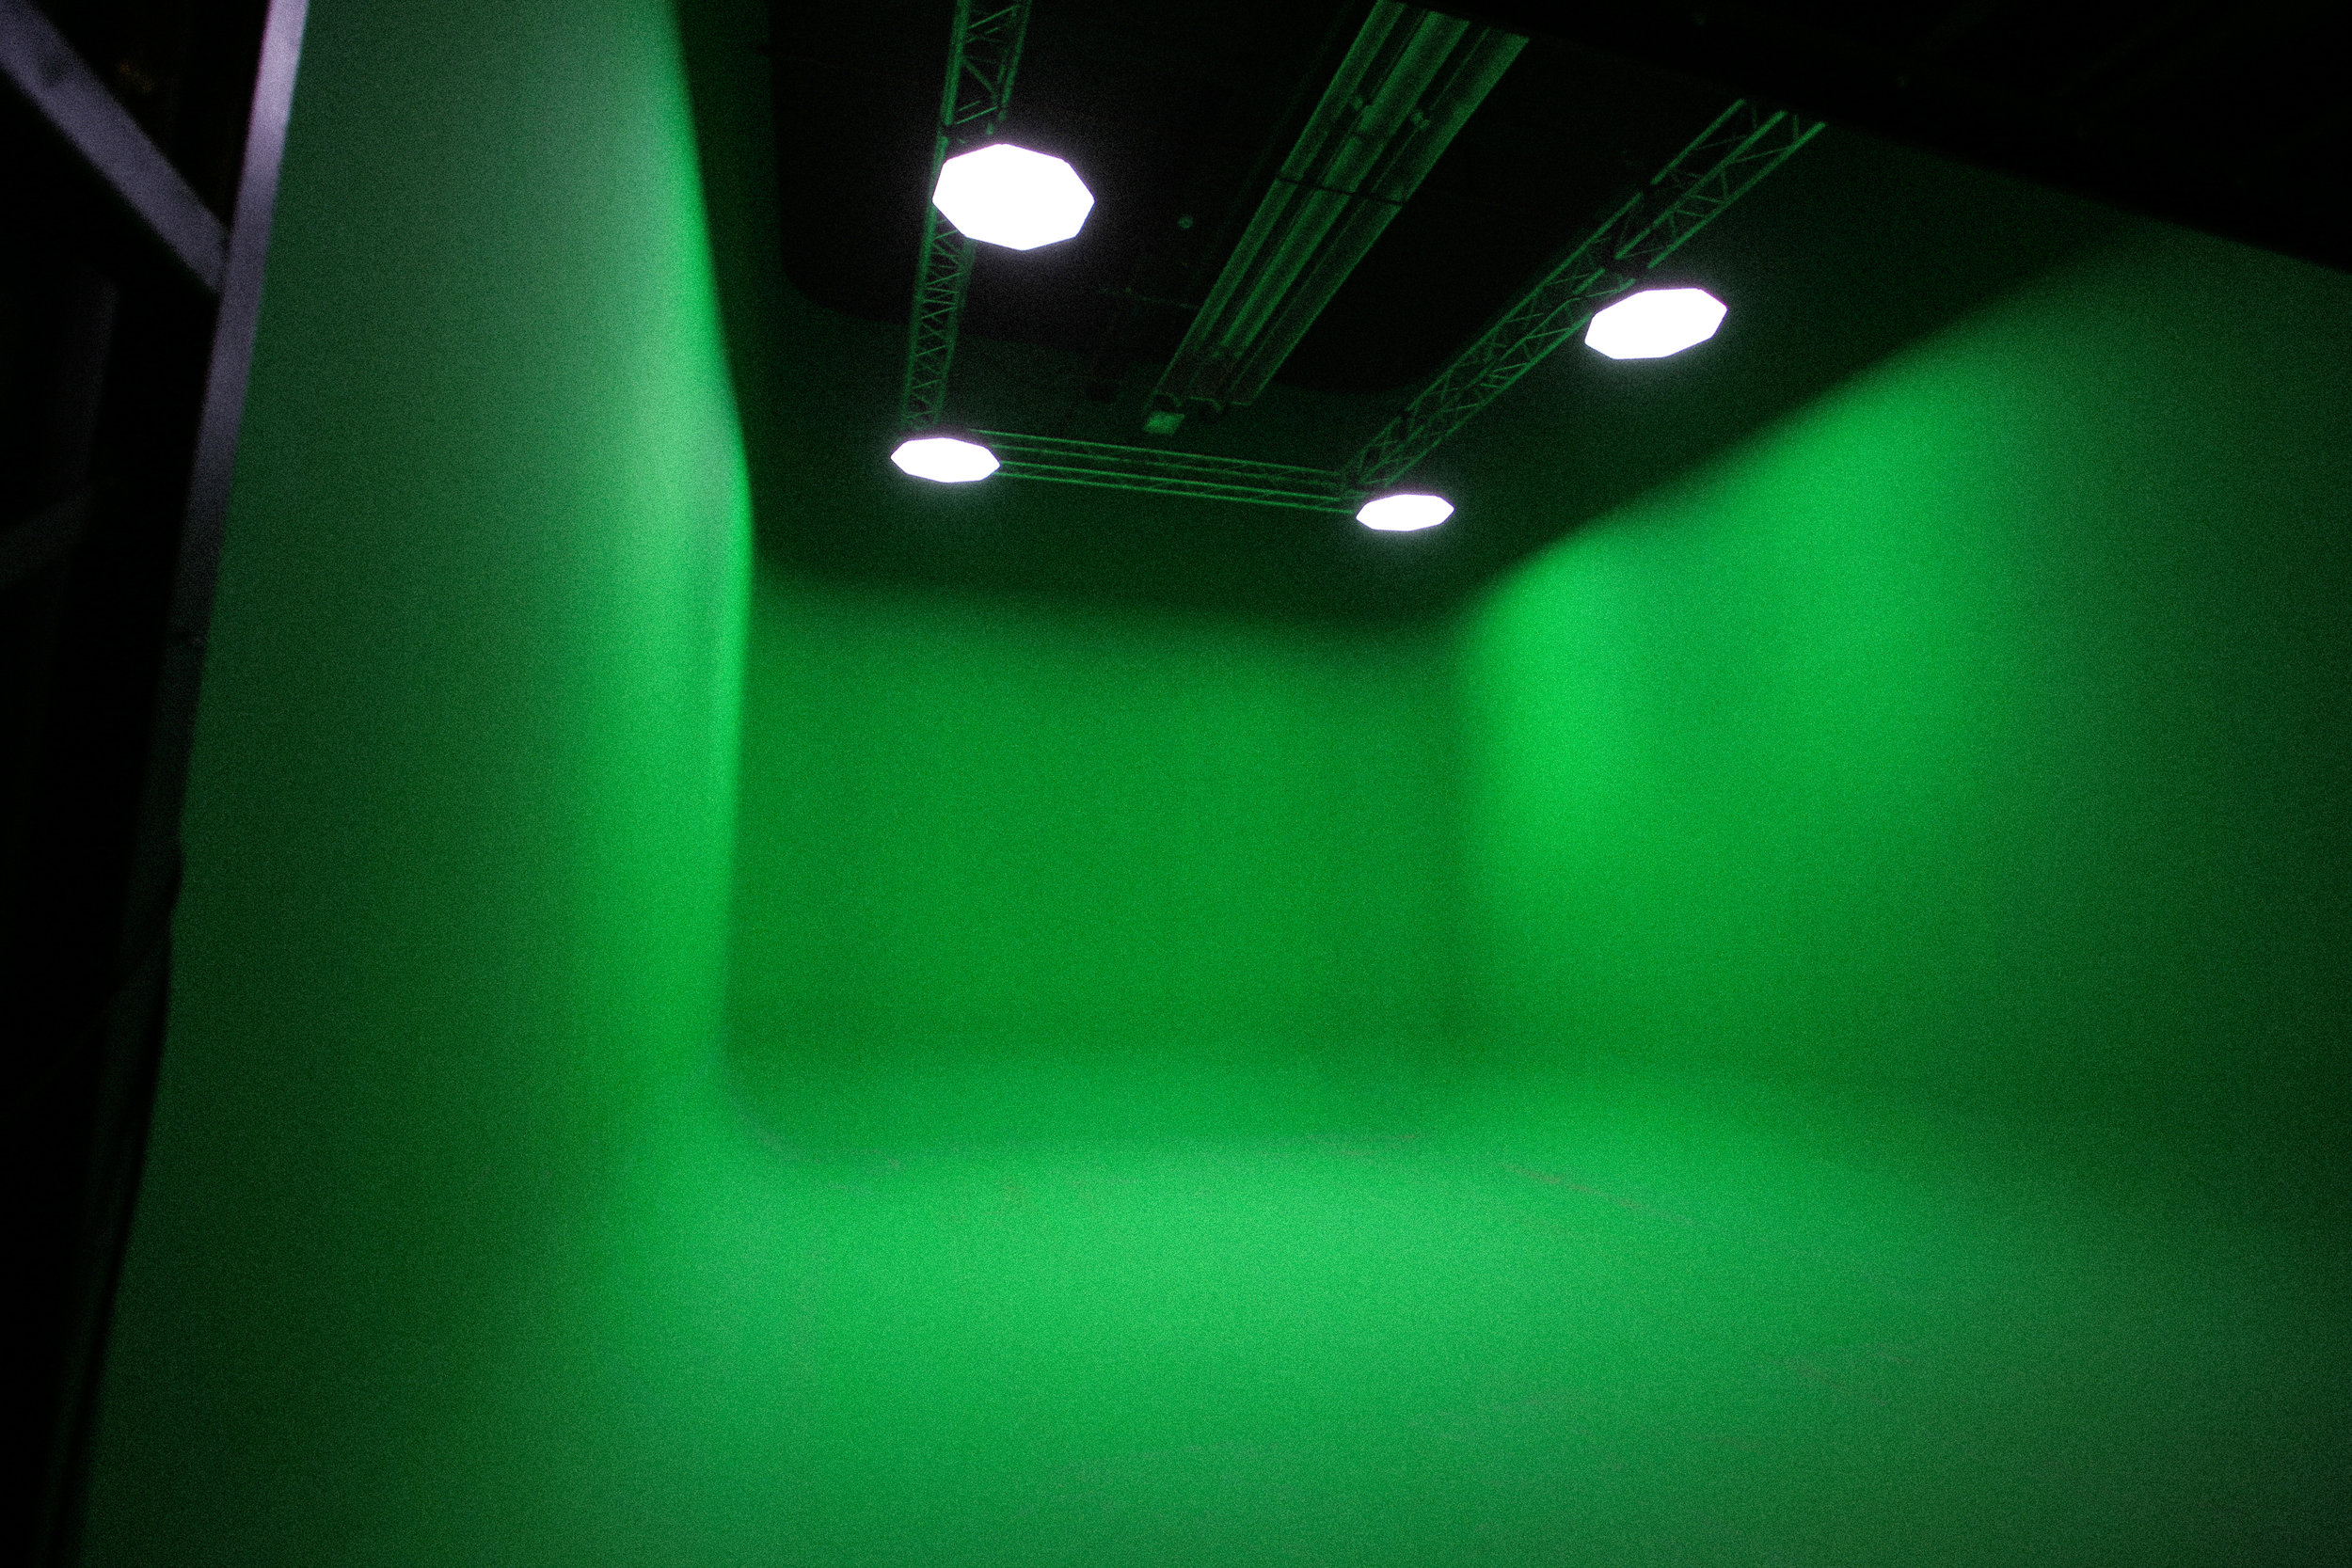 GO GREEN… - OUR PRE-LIT CYCLORAMA GREEN SCREEN IS THE IDEAL SPACE FOR CONTENT CREATION